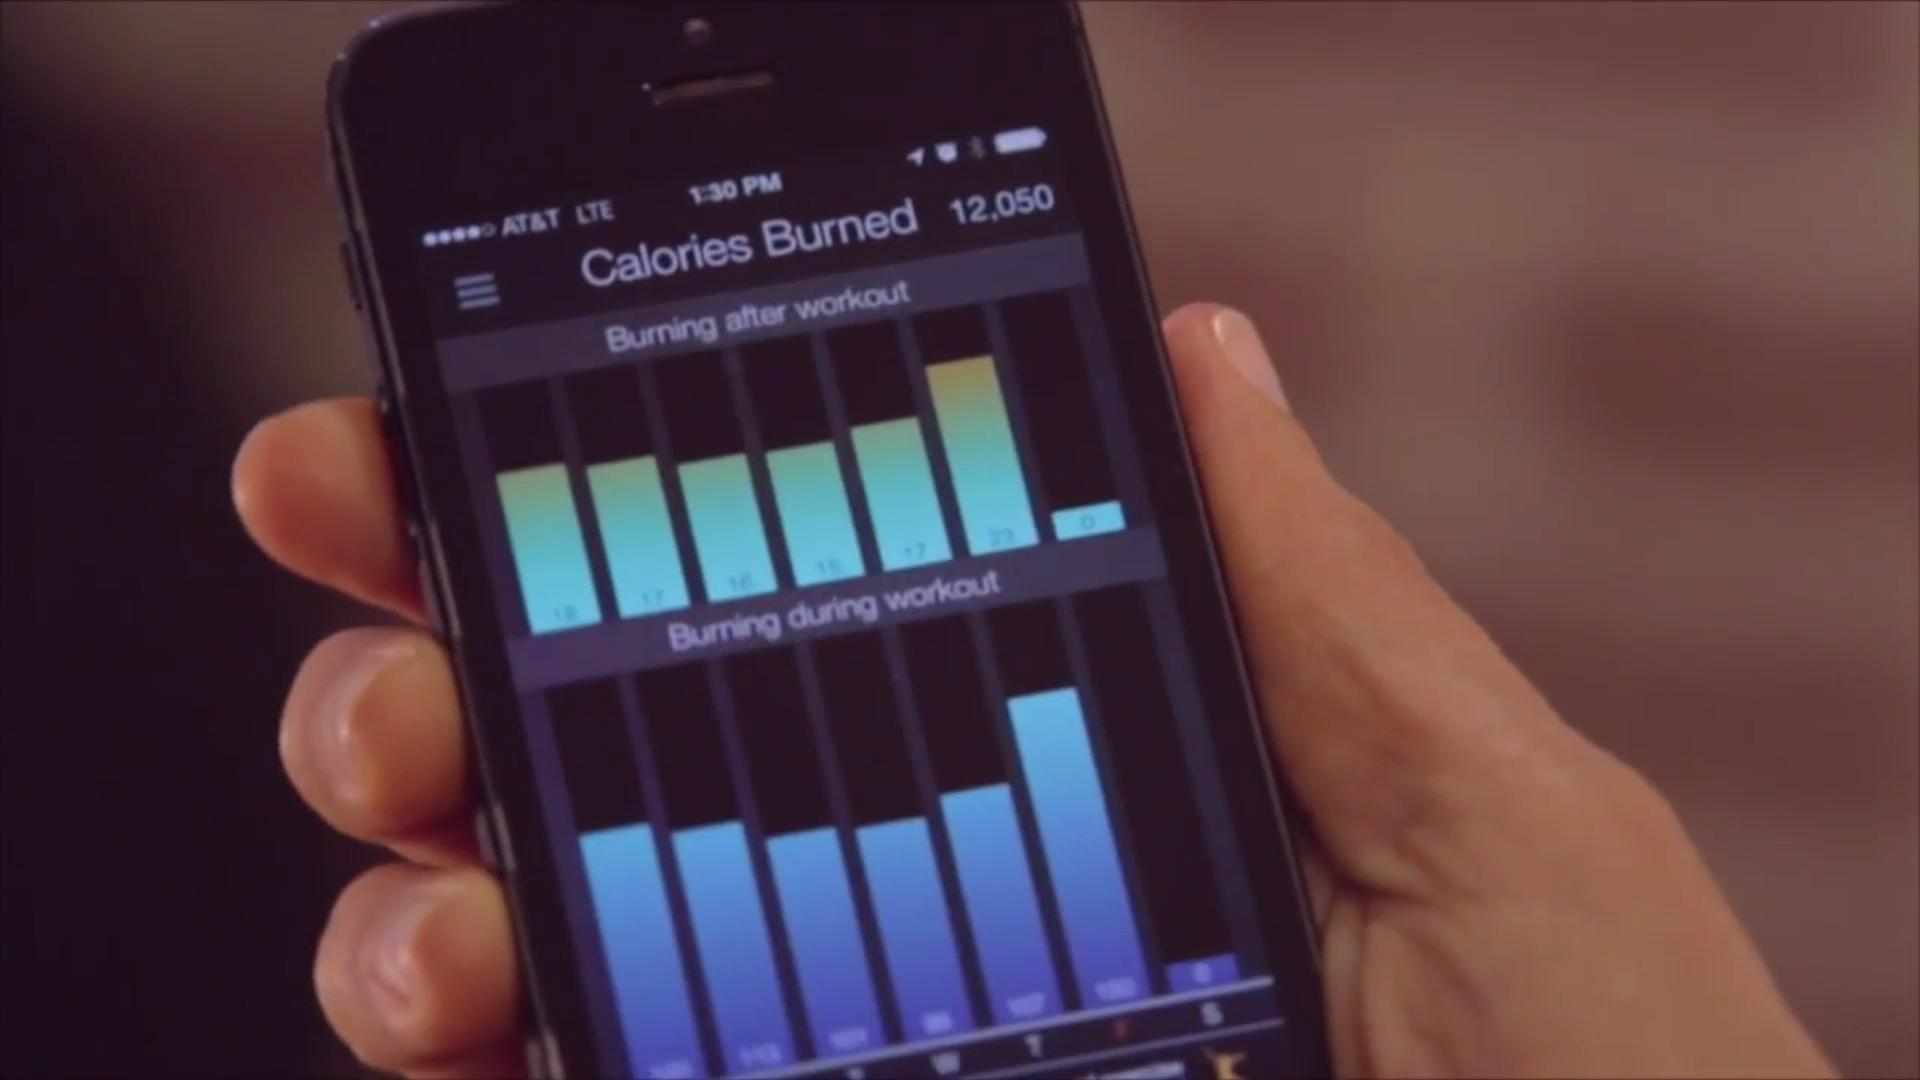 The Best Motivational Apps for Your Workout